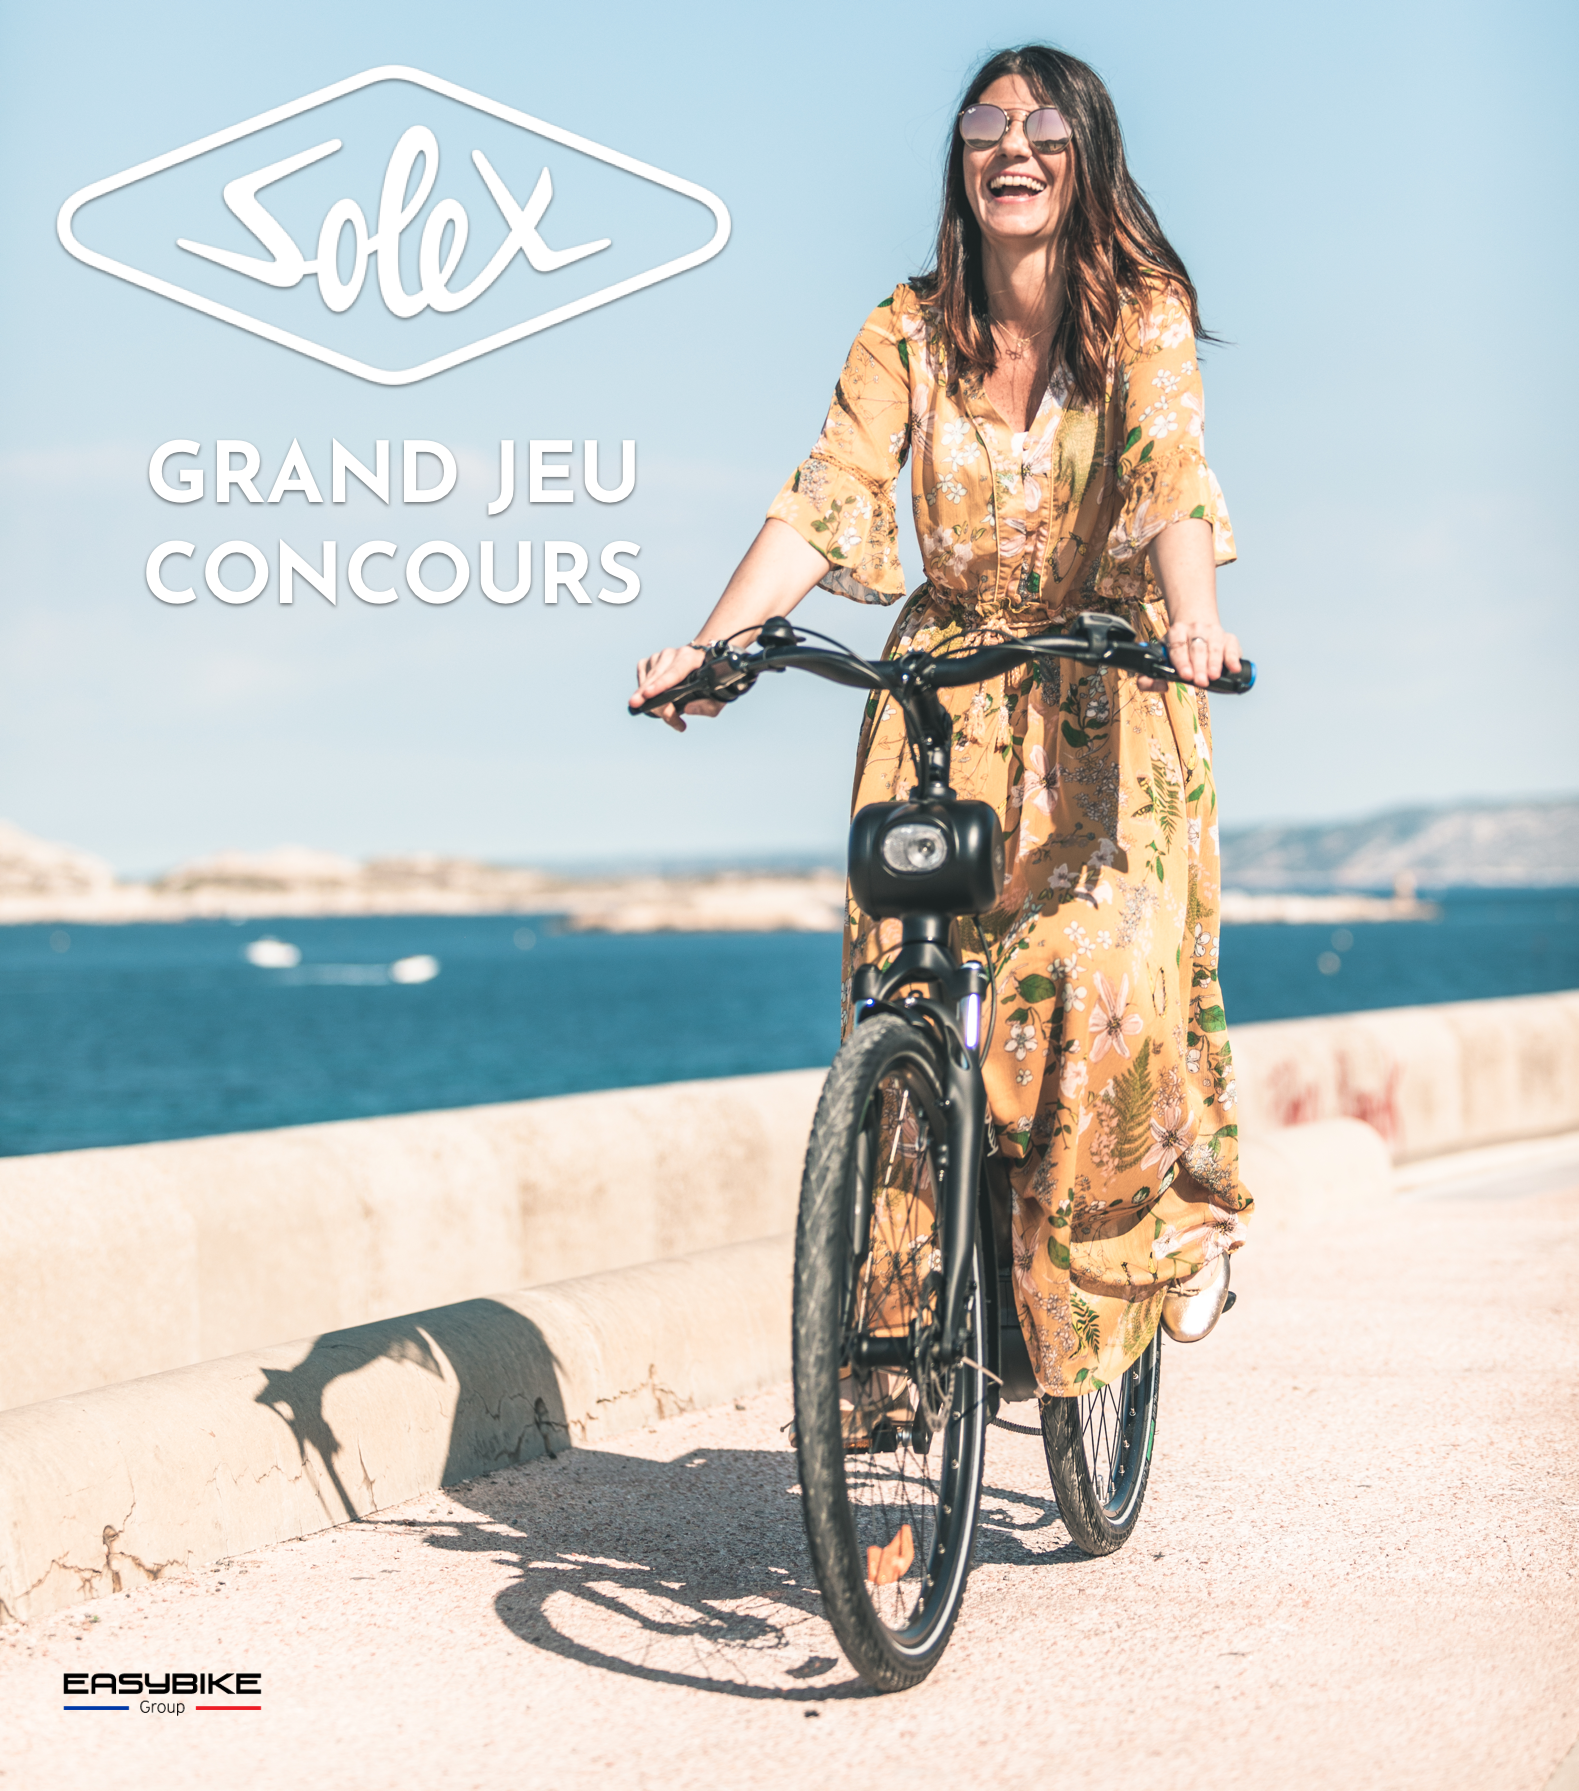 Solexity infinity d8 concours solex